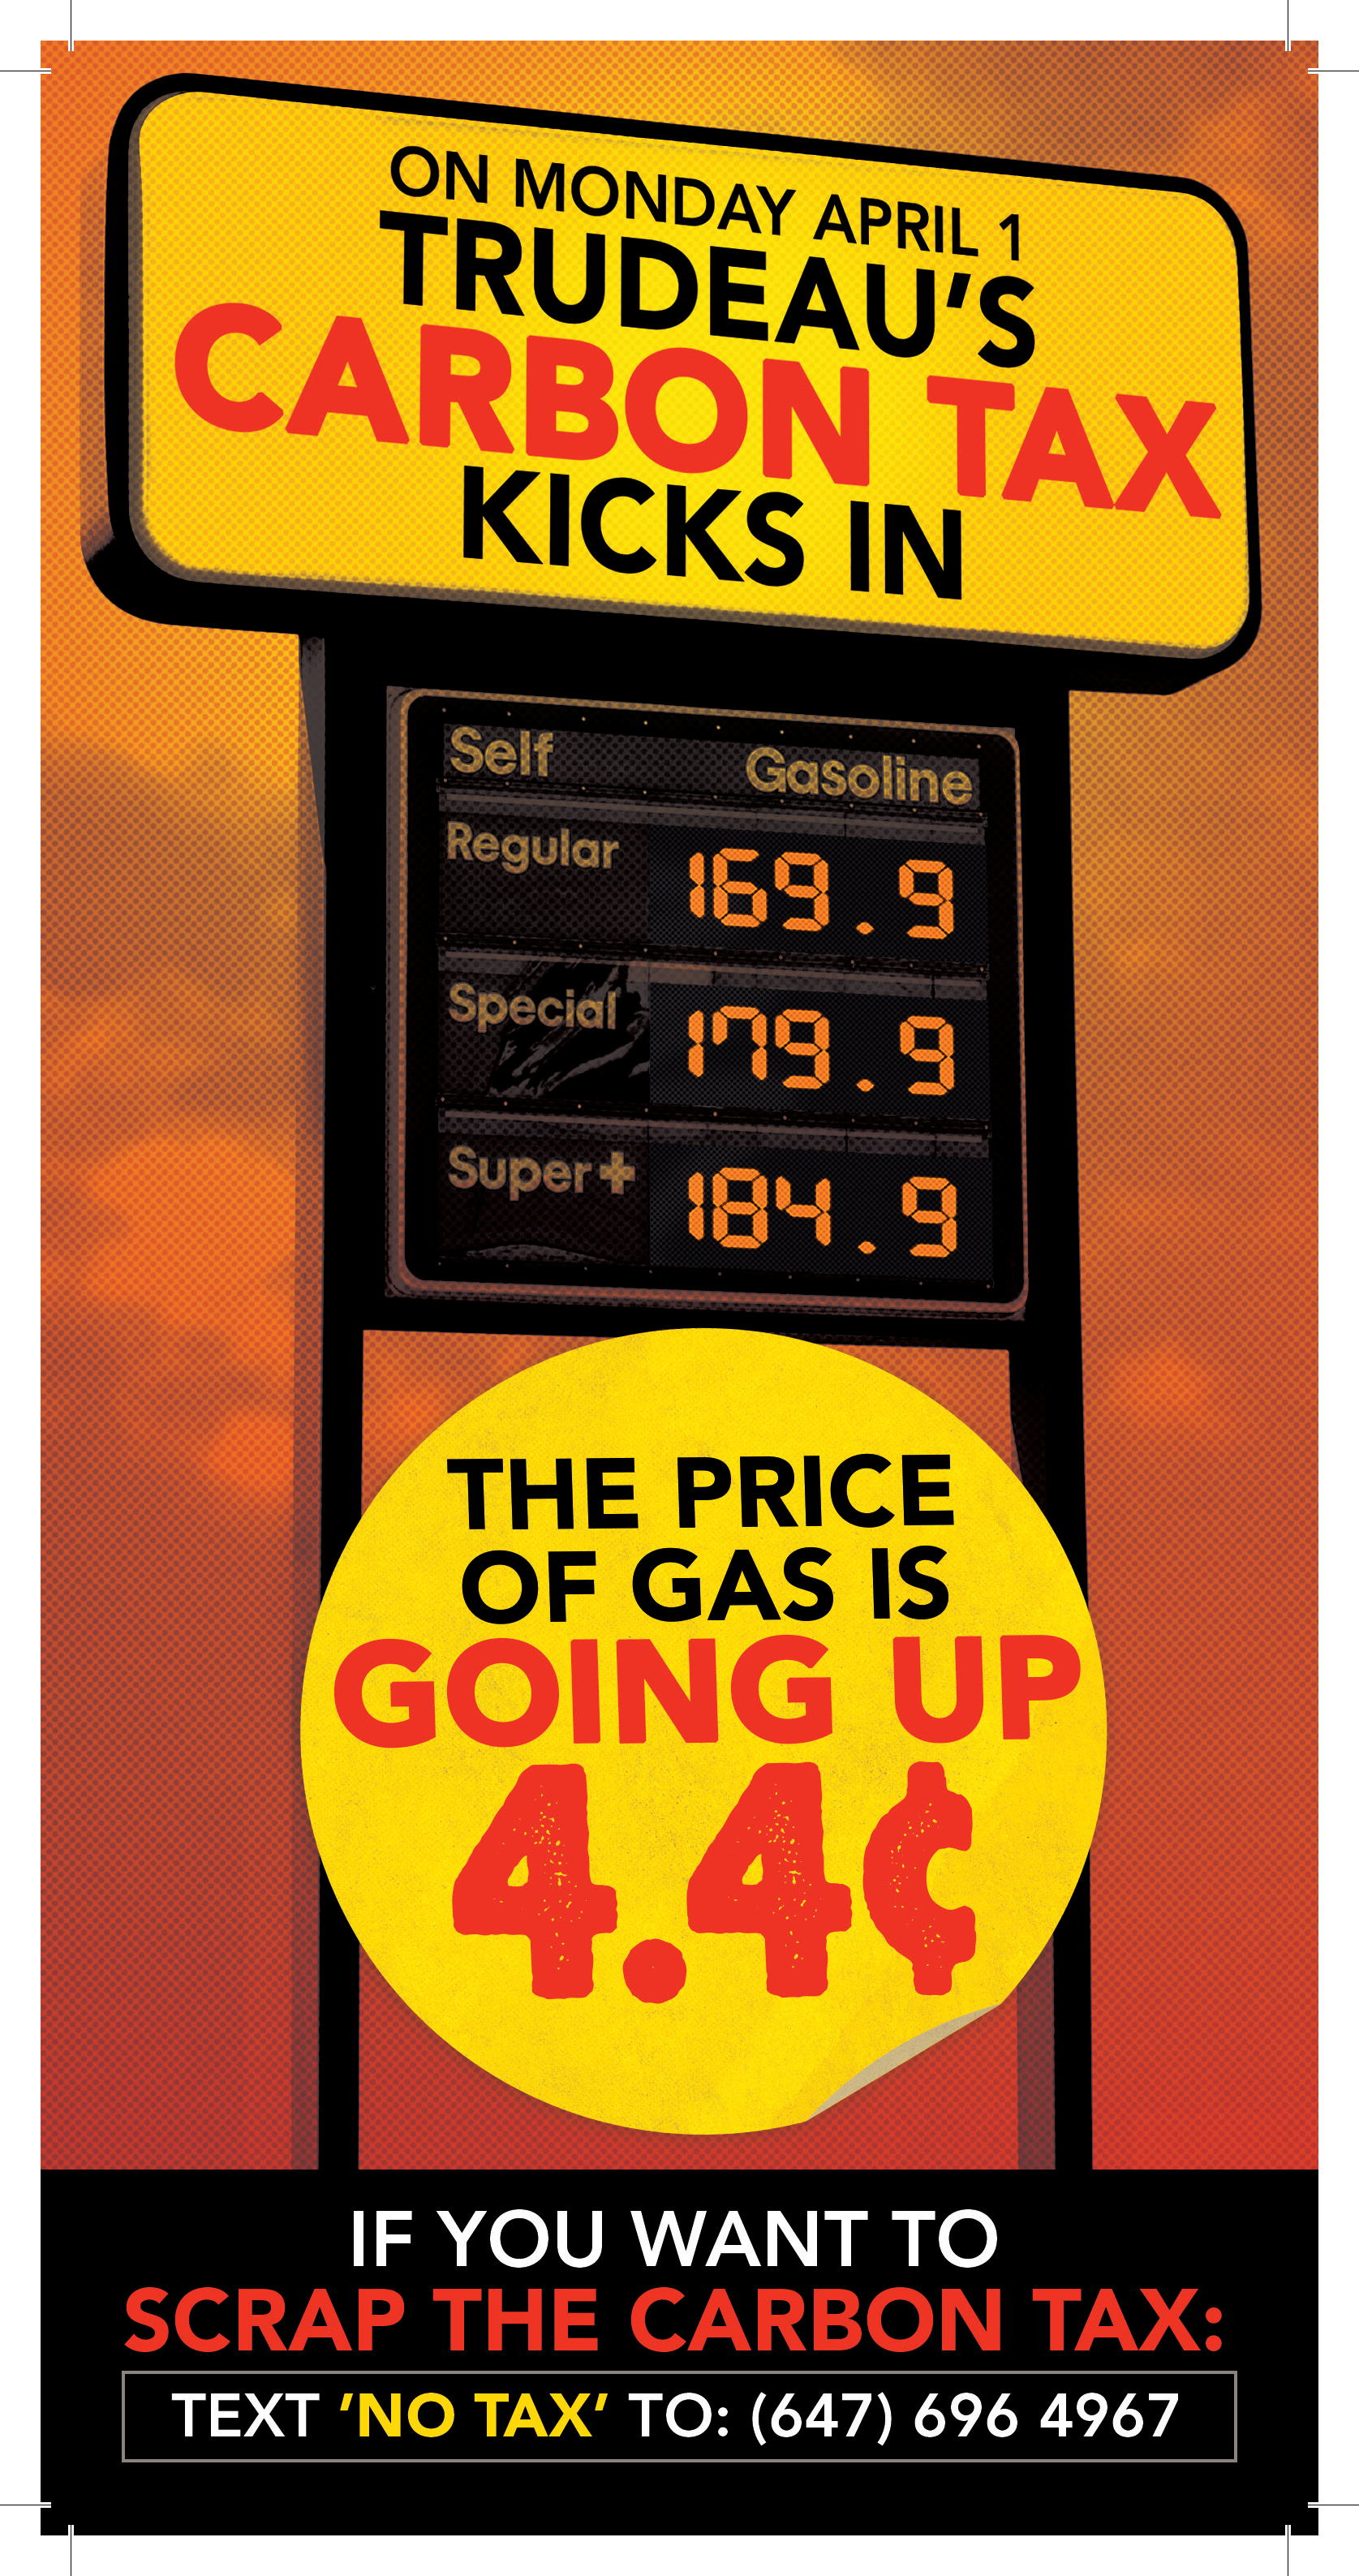 Gas_Prices_Are_Going_Up-TO_Page_1.png